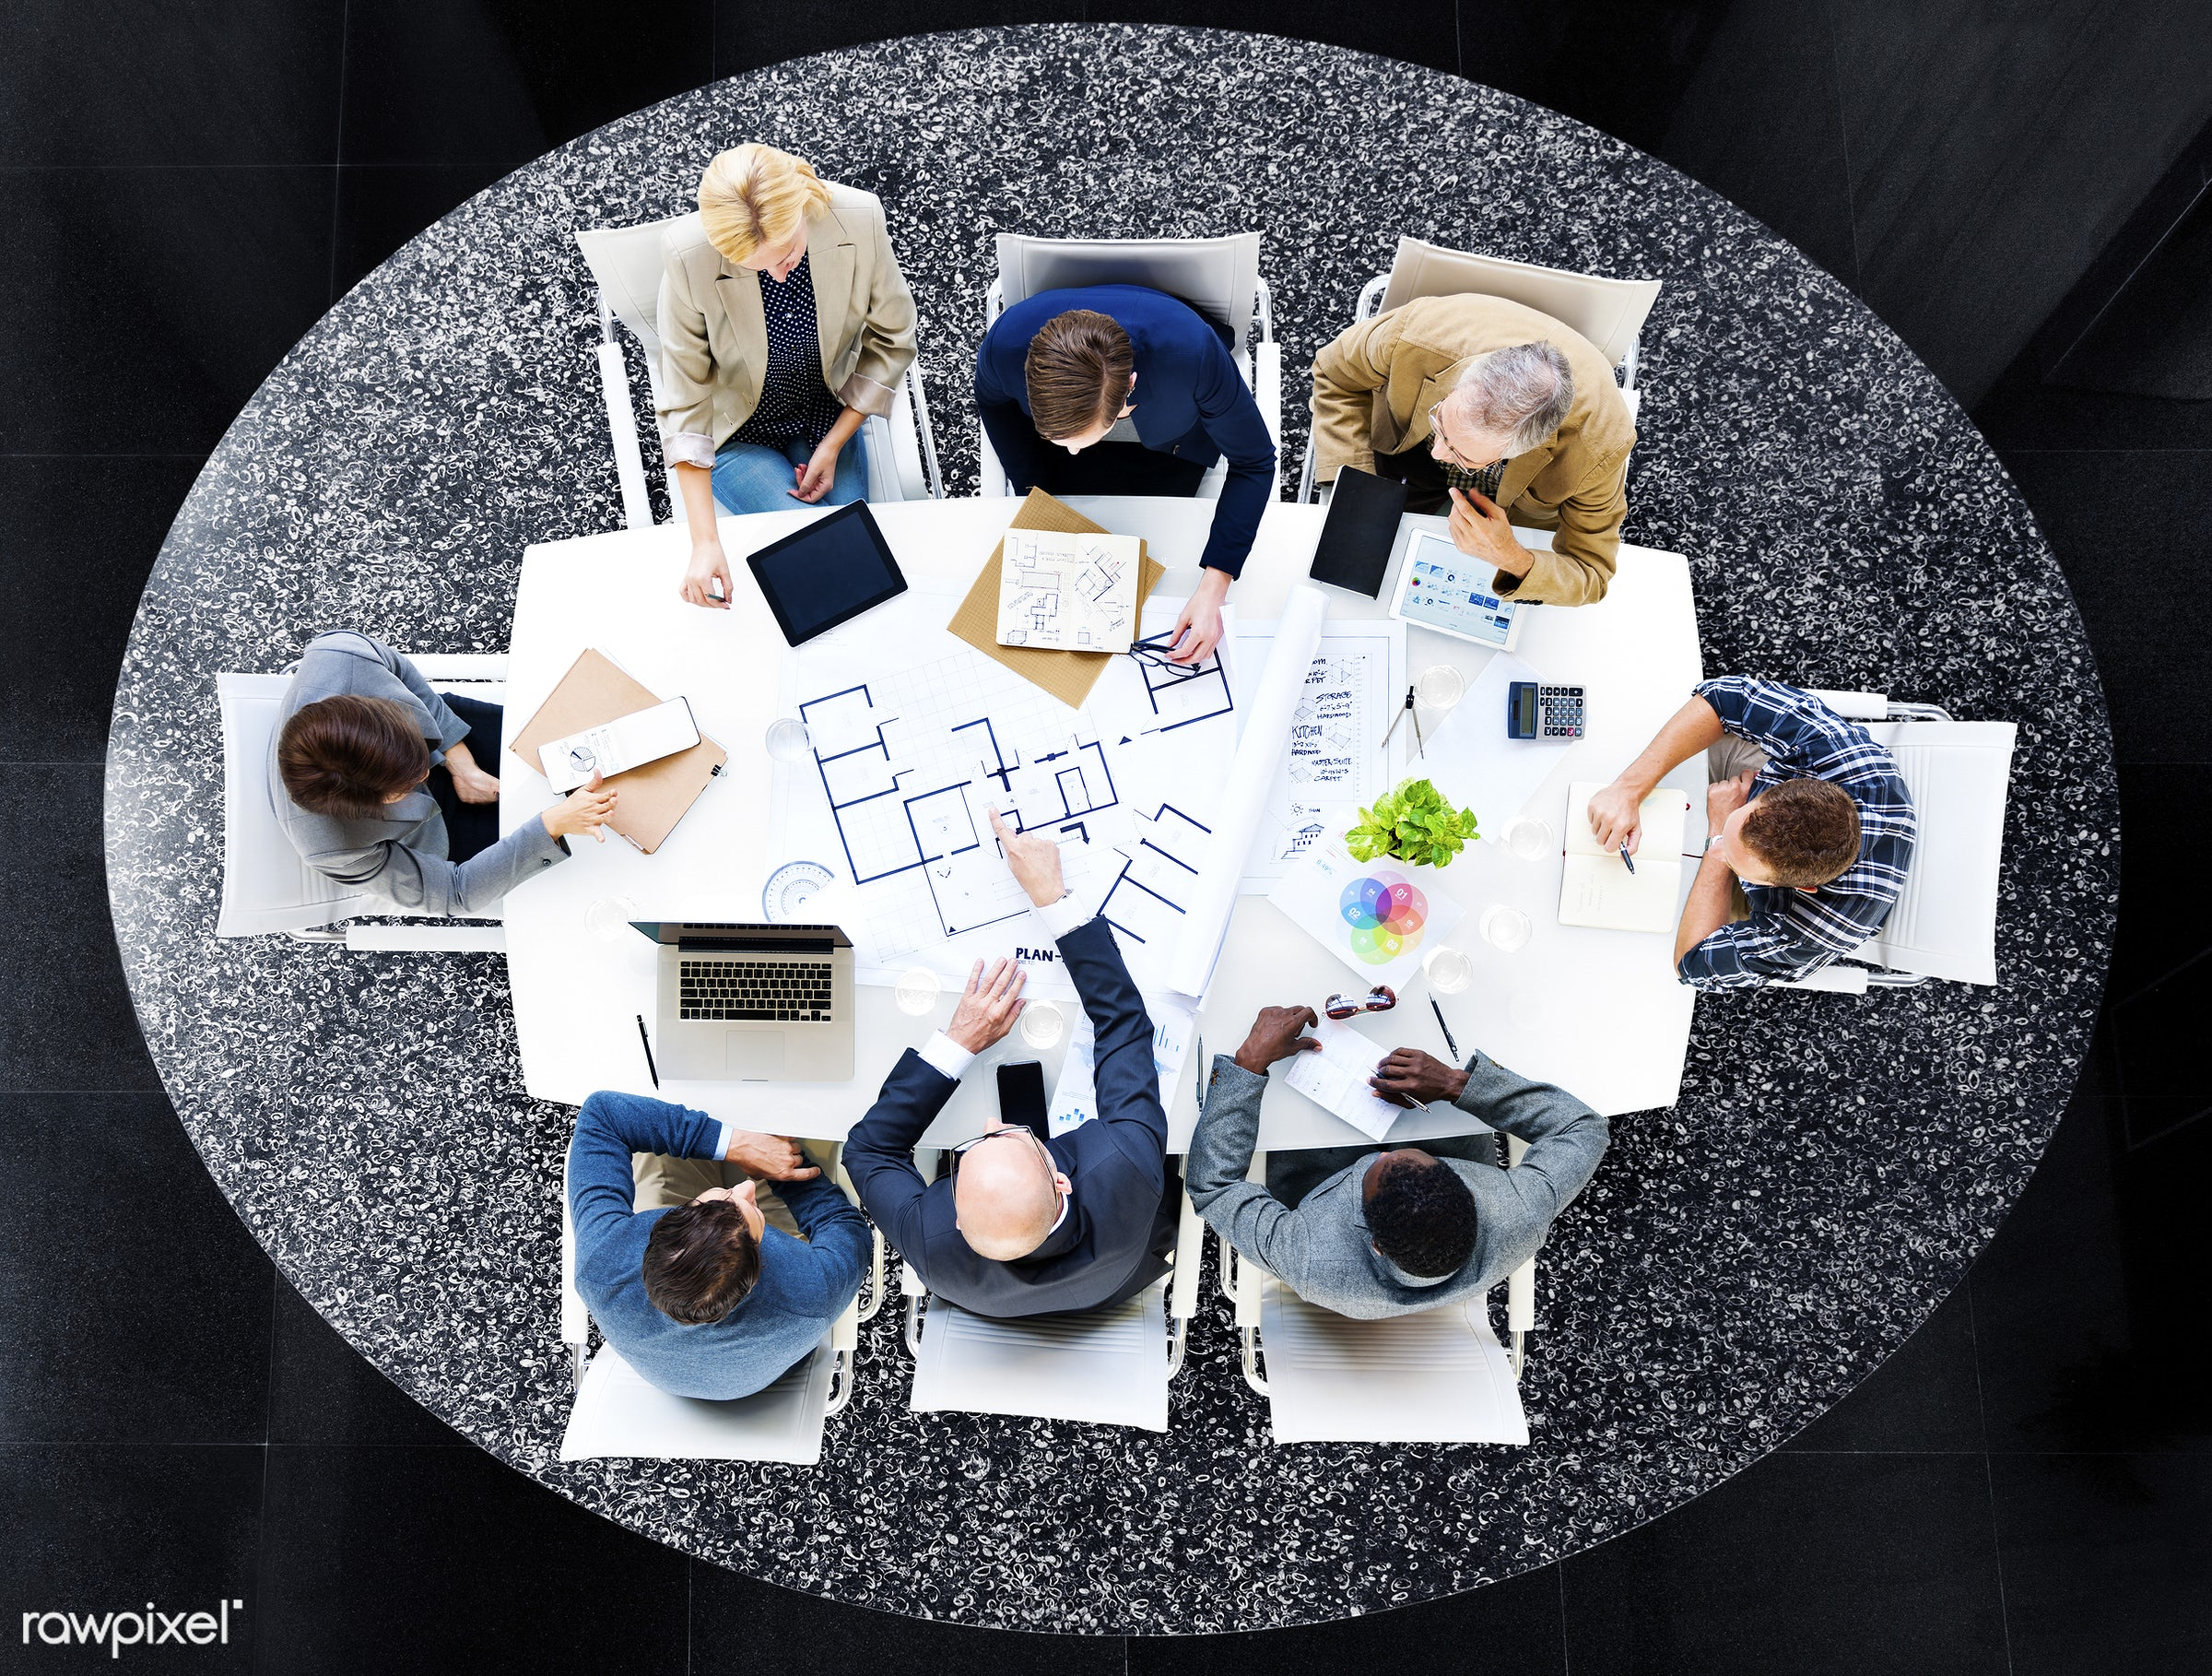 aerial view, architect, architecture, blueprint, board meeting, board room, brainstorming, business, business people,...